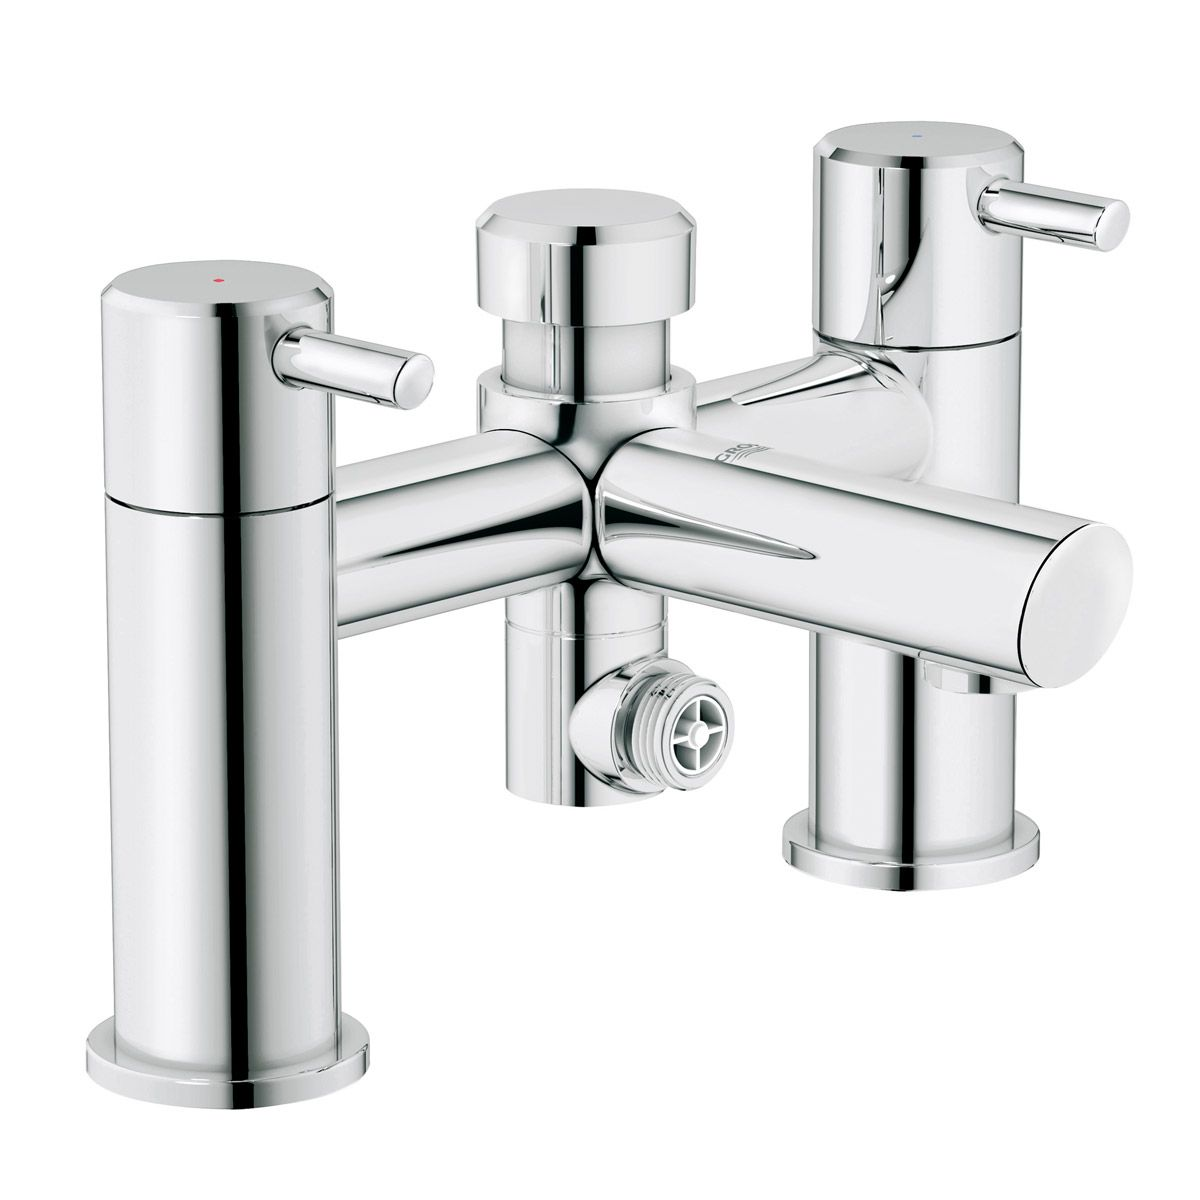 Grohe Concetto bath shower mixer tap | Bath shower mixer taps ...